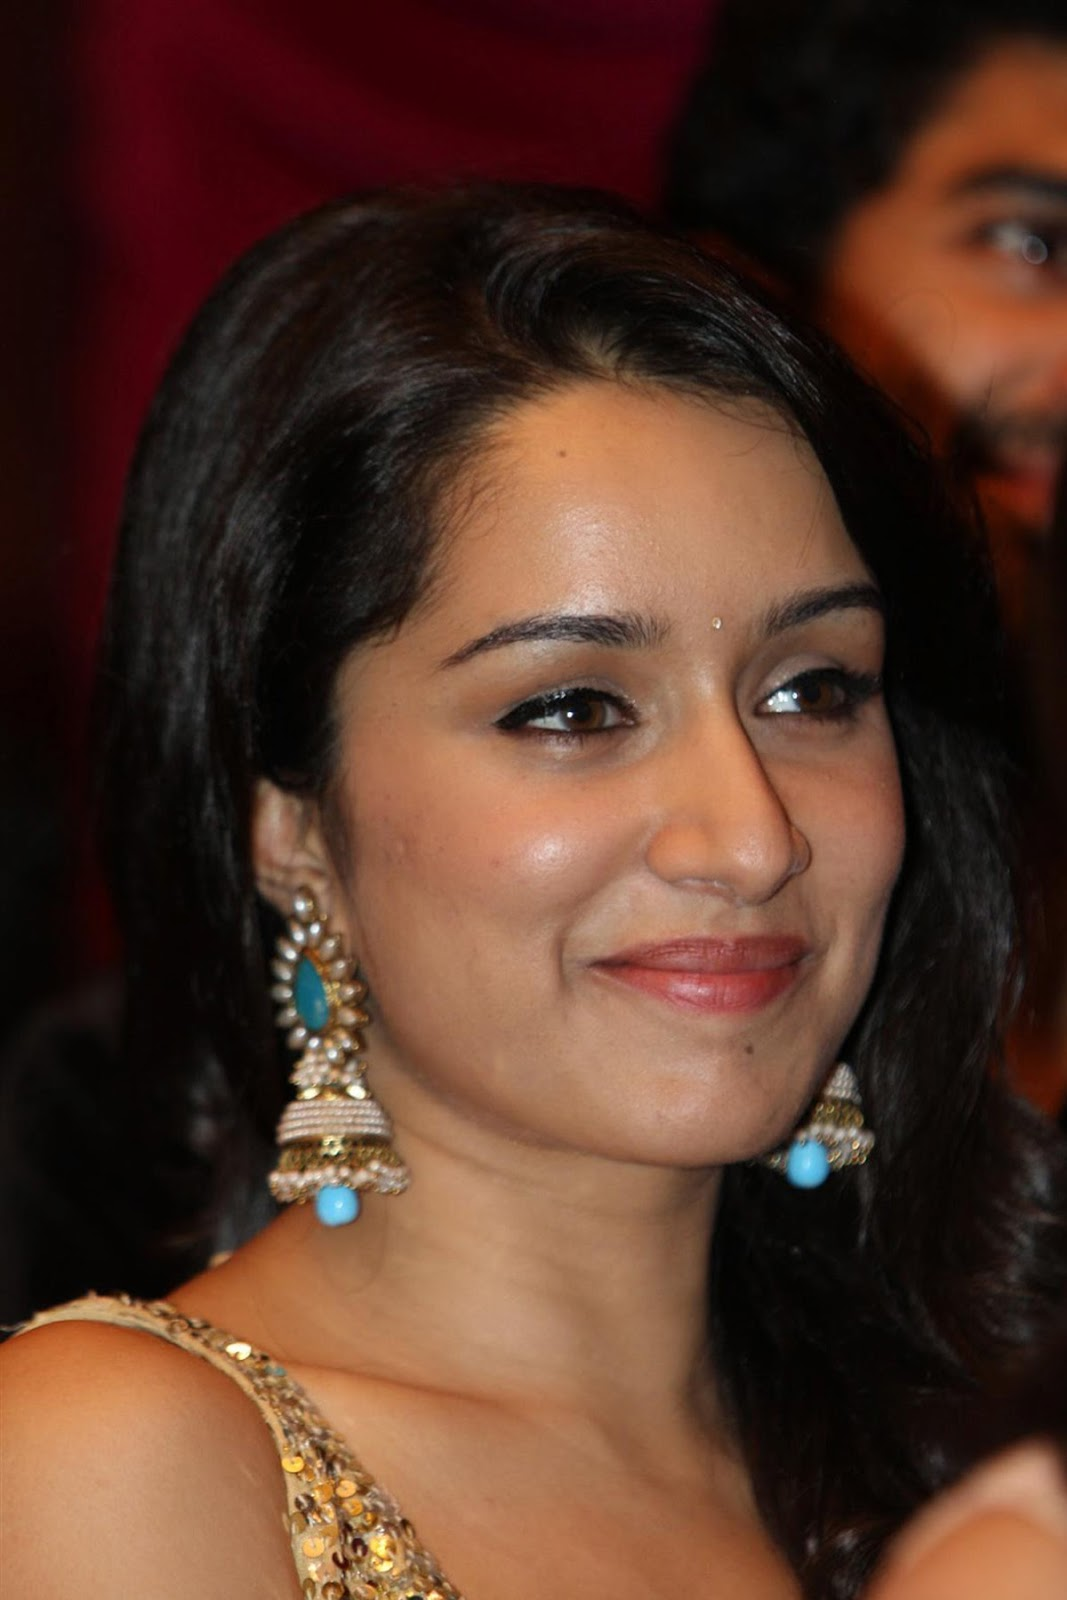 shraddha kapoor | hd wallpapers (high definition) | free background